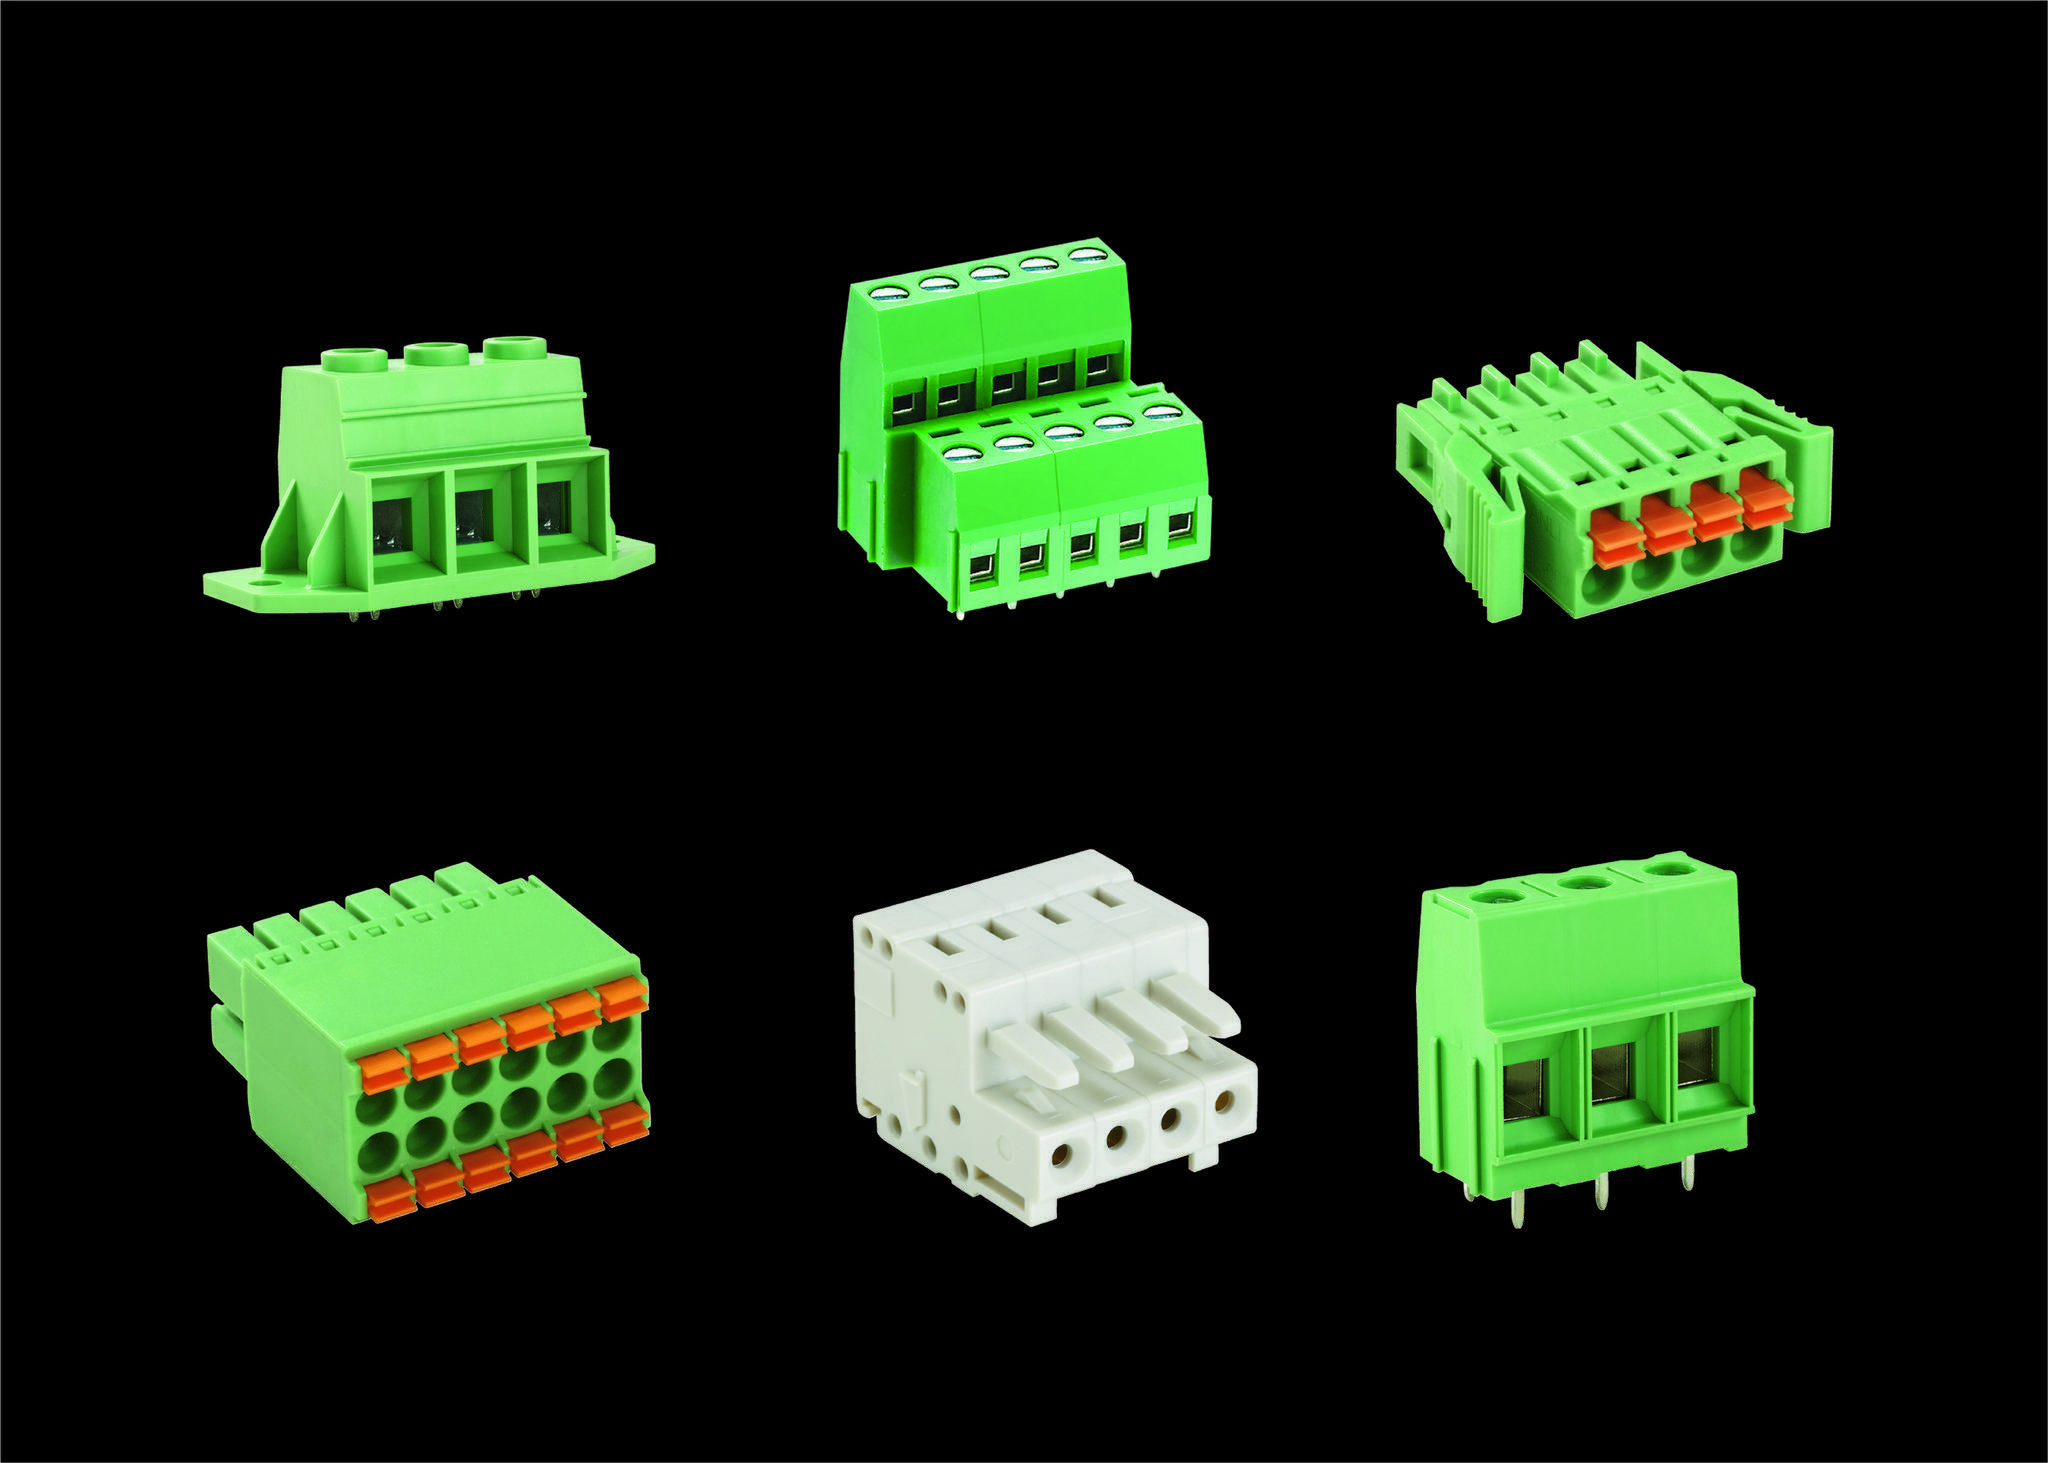 Hylec Apl To Exhibit New High Current Pcb Terminal Blocks And Fuse Dc Electronic March 2018 Wellingborough Uk The Specialist Supplier Manufacturer Of Electrical Components Enclosures Is Exhibiting For First